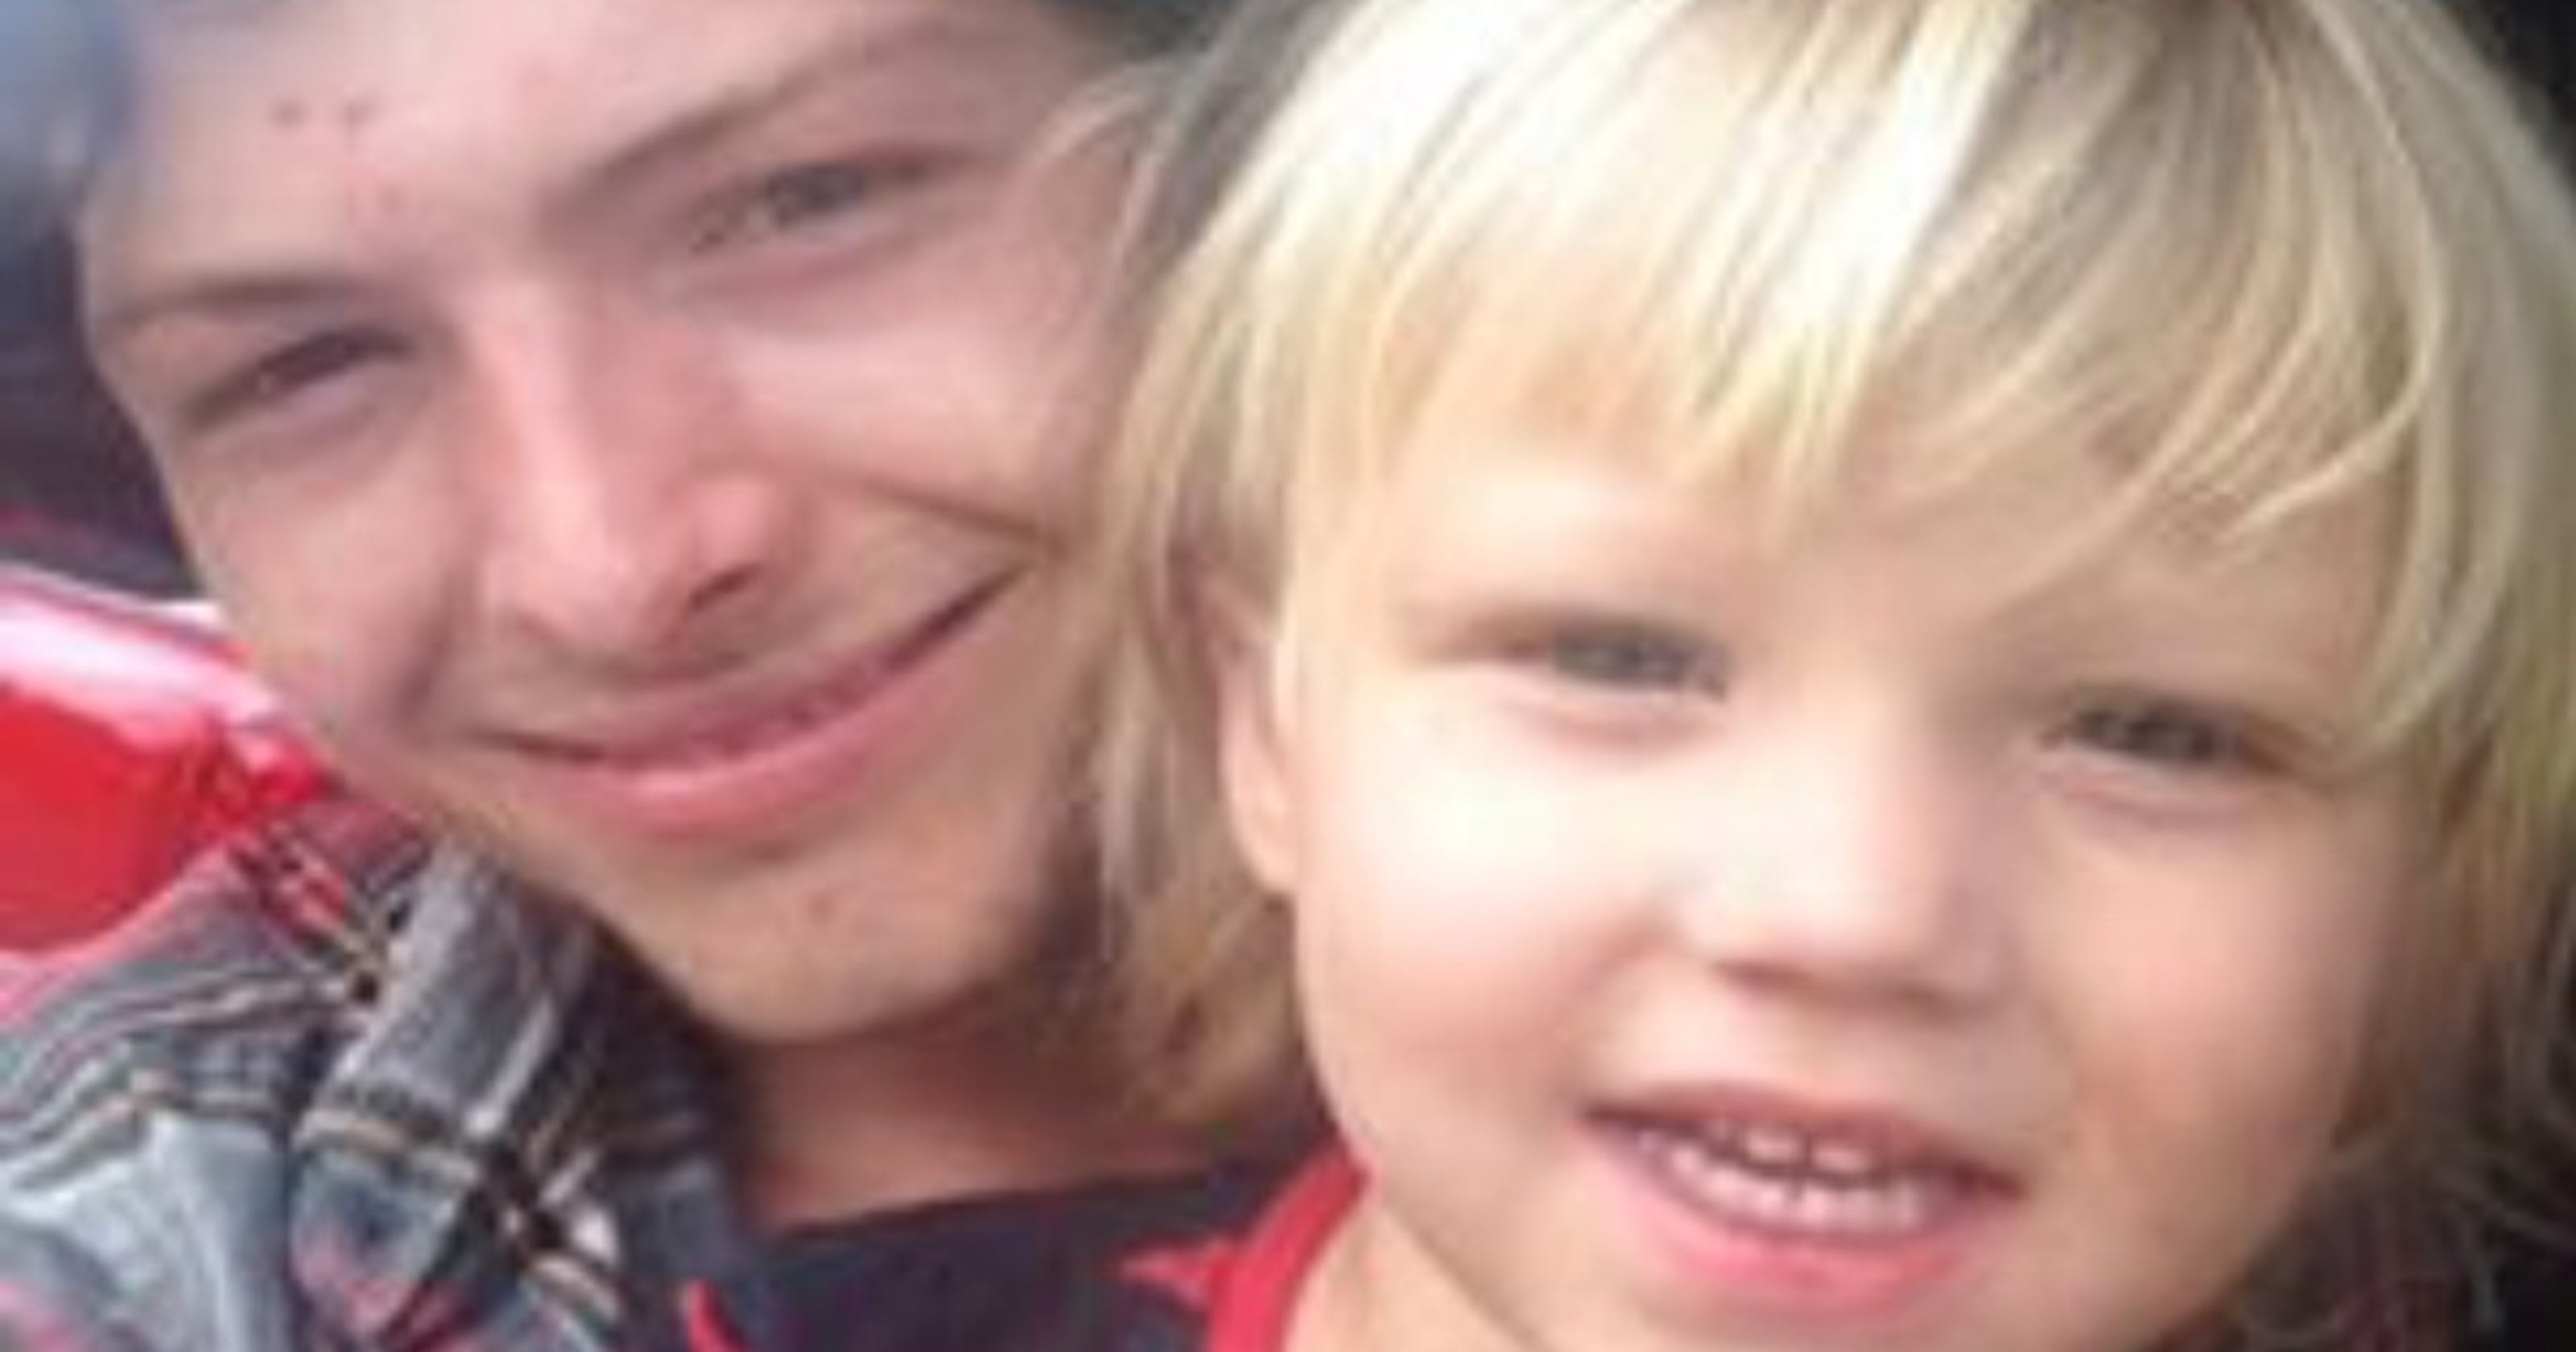 Rhoden case: 'Hate seeing my daughter cry'